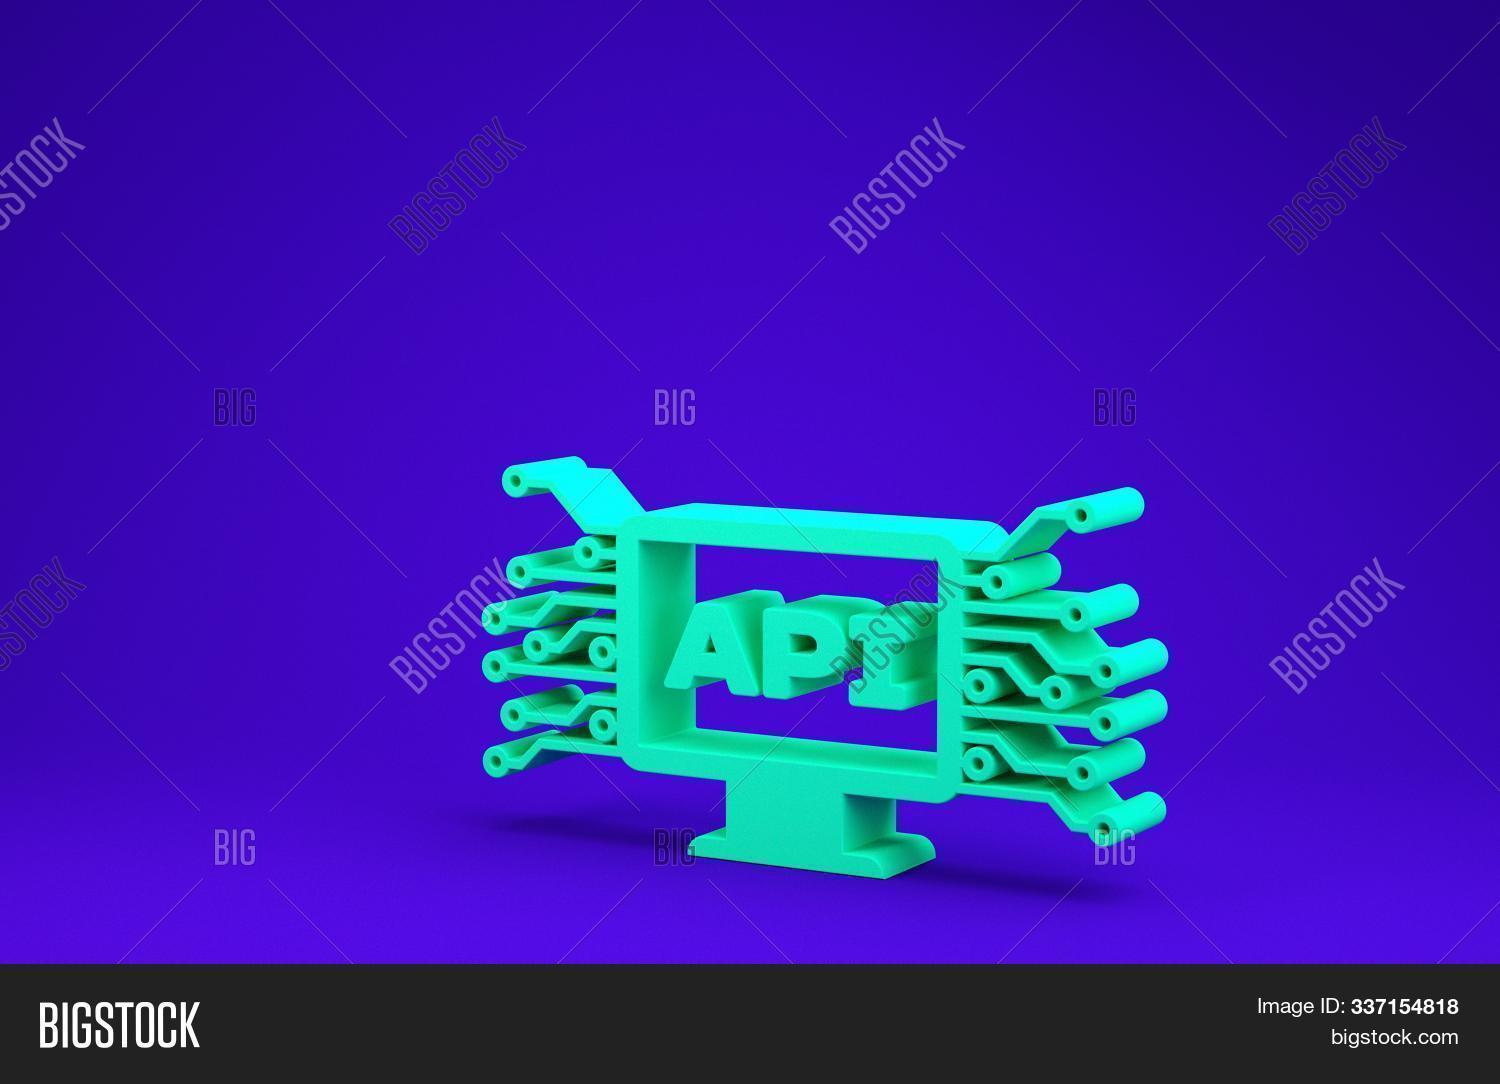 Green Computer api interface icon isolated on blue background. Application programming interface API technology. Software integration. Minimalism concept. 3d illustration 3D render